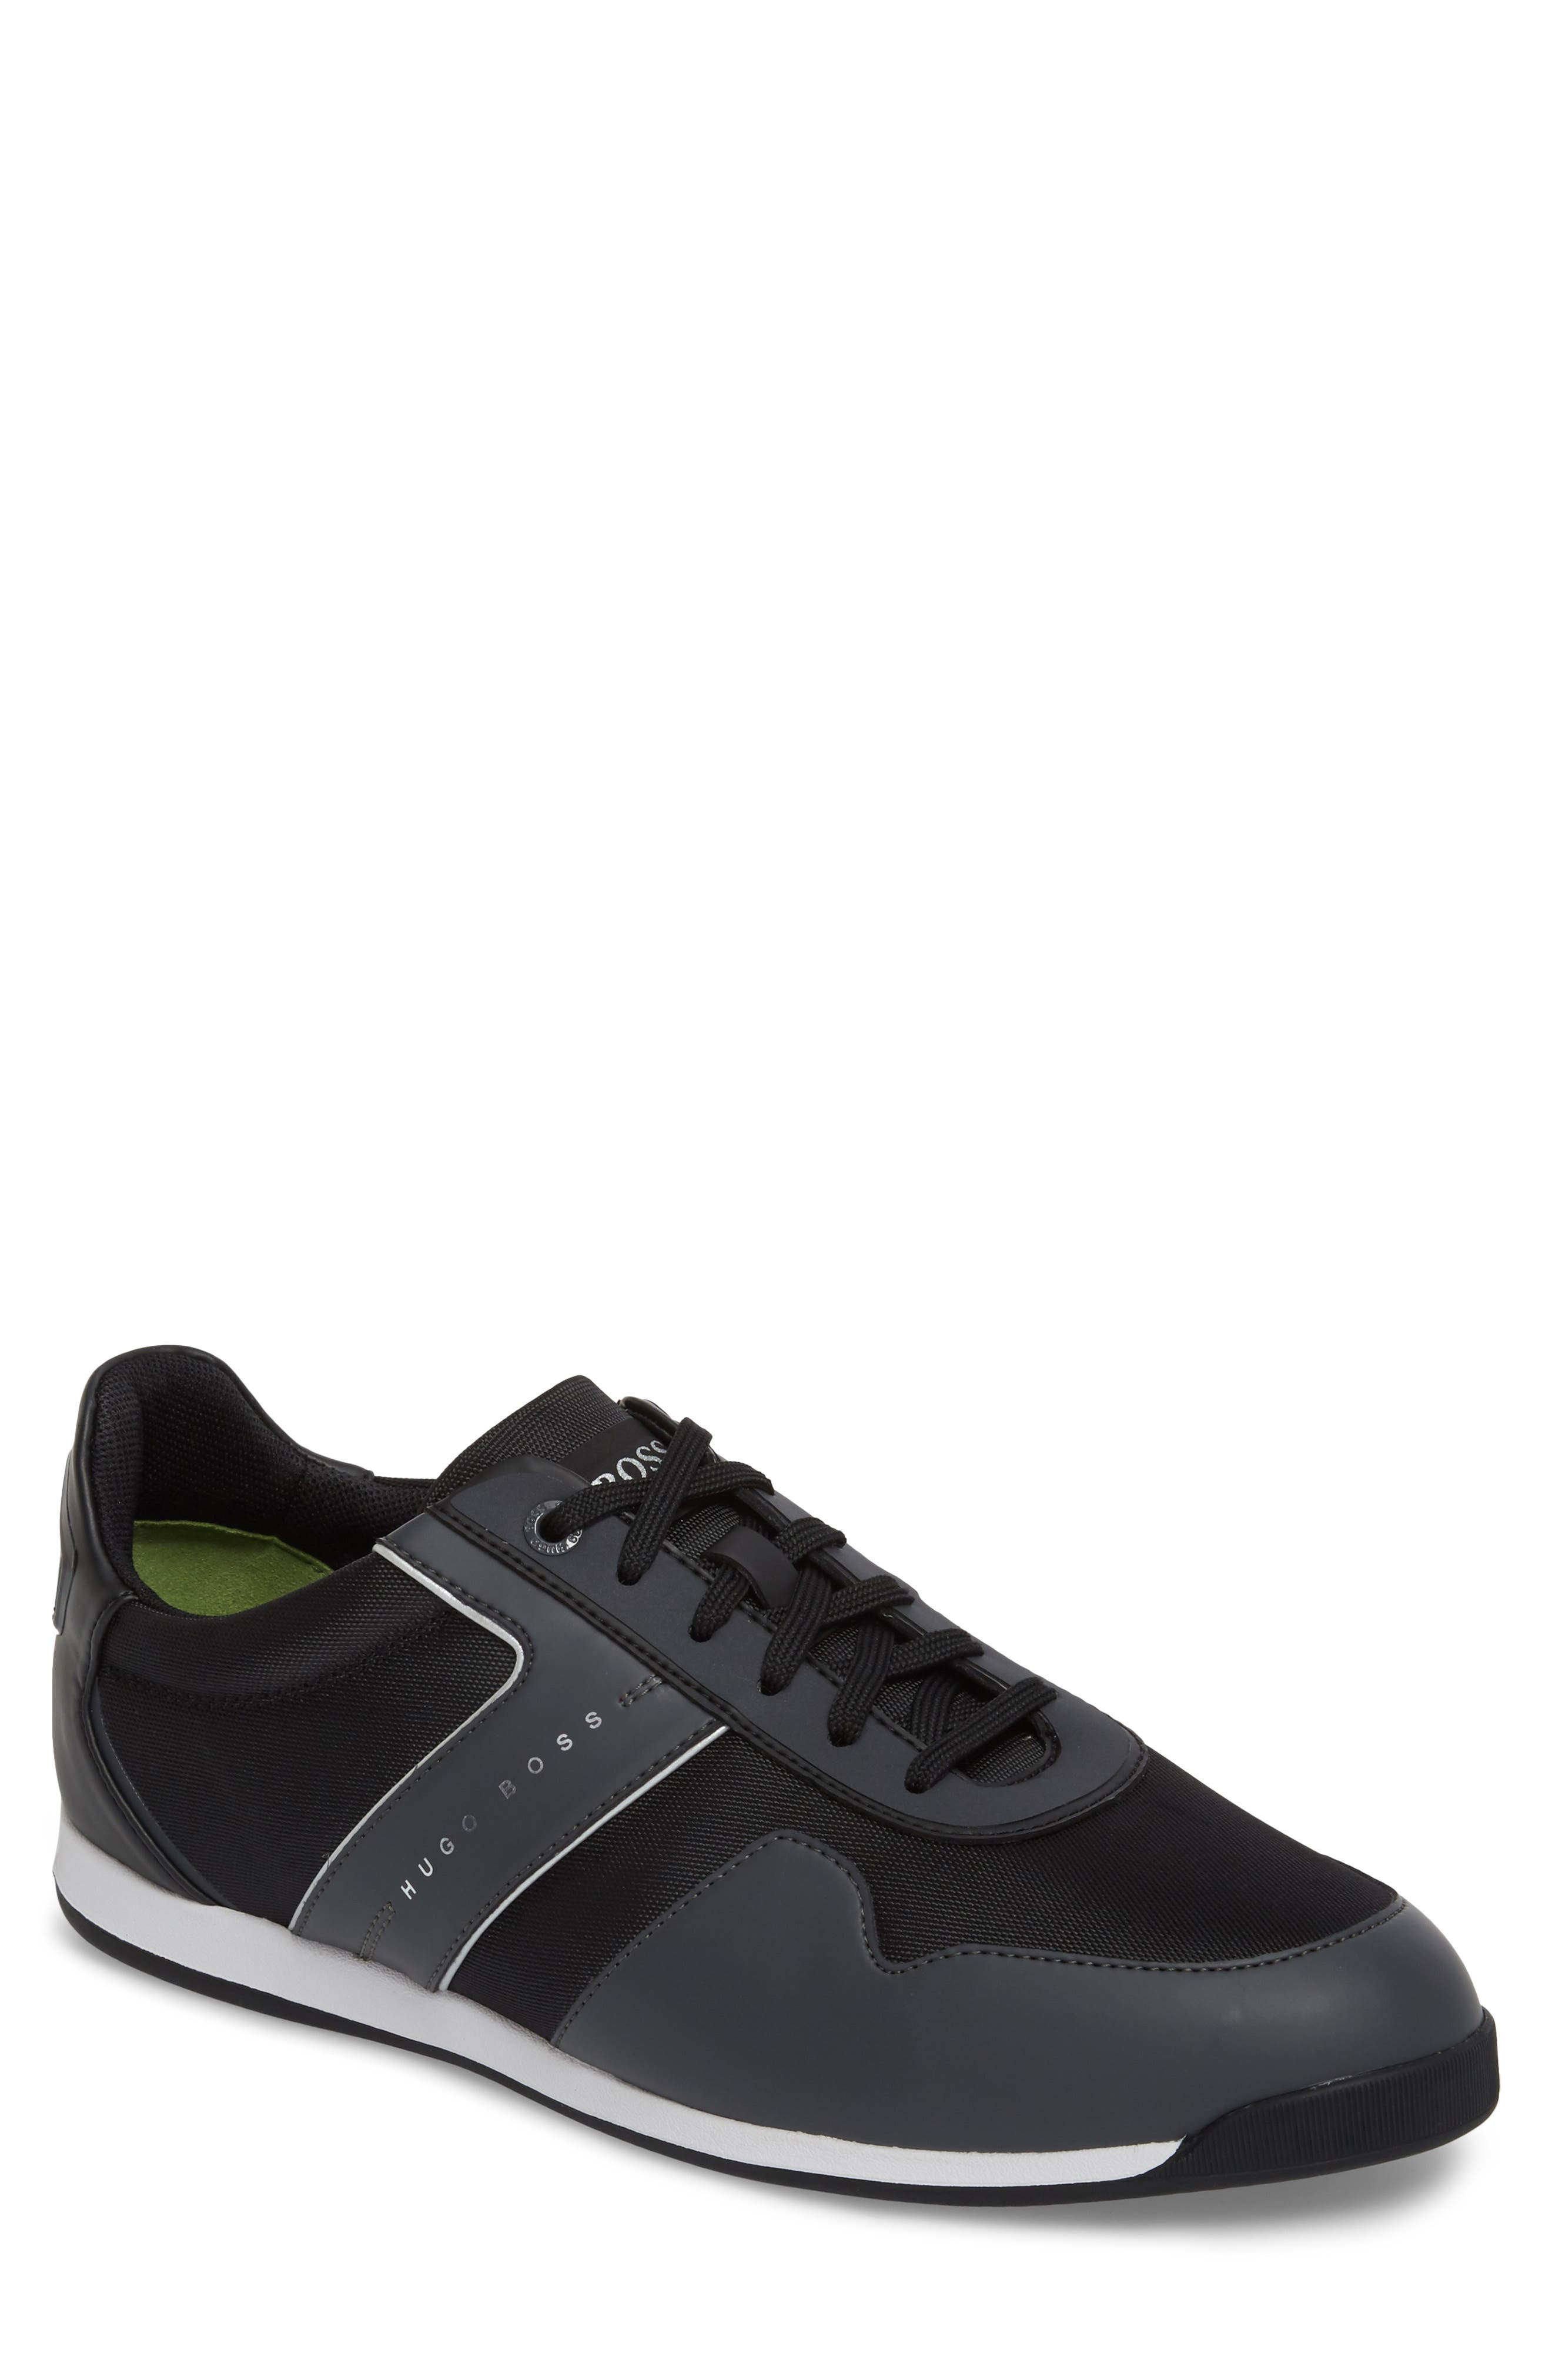 Maze Water Resistant Low Top Sneaker,                             Main thumbnail 1, color,                             Charcoal